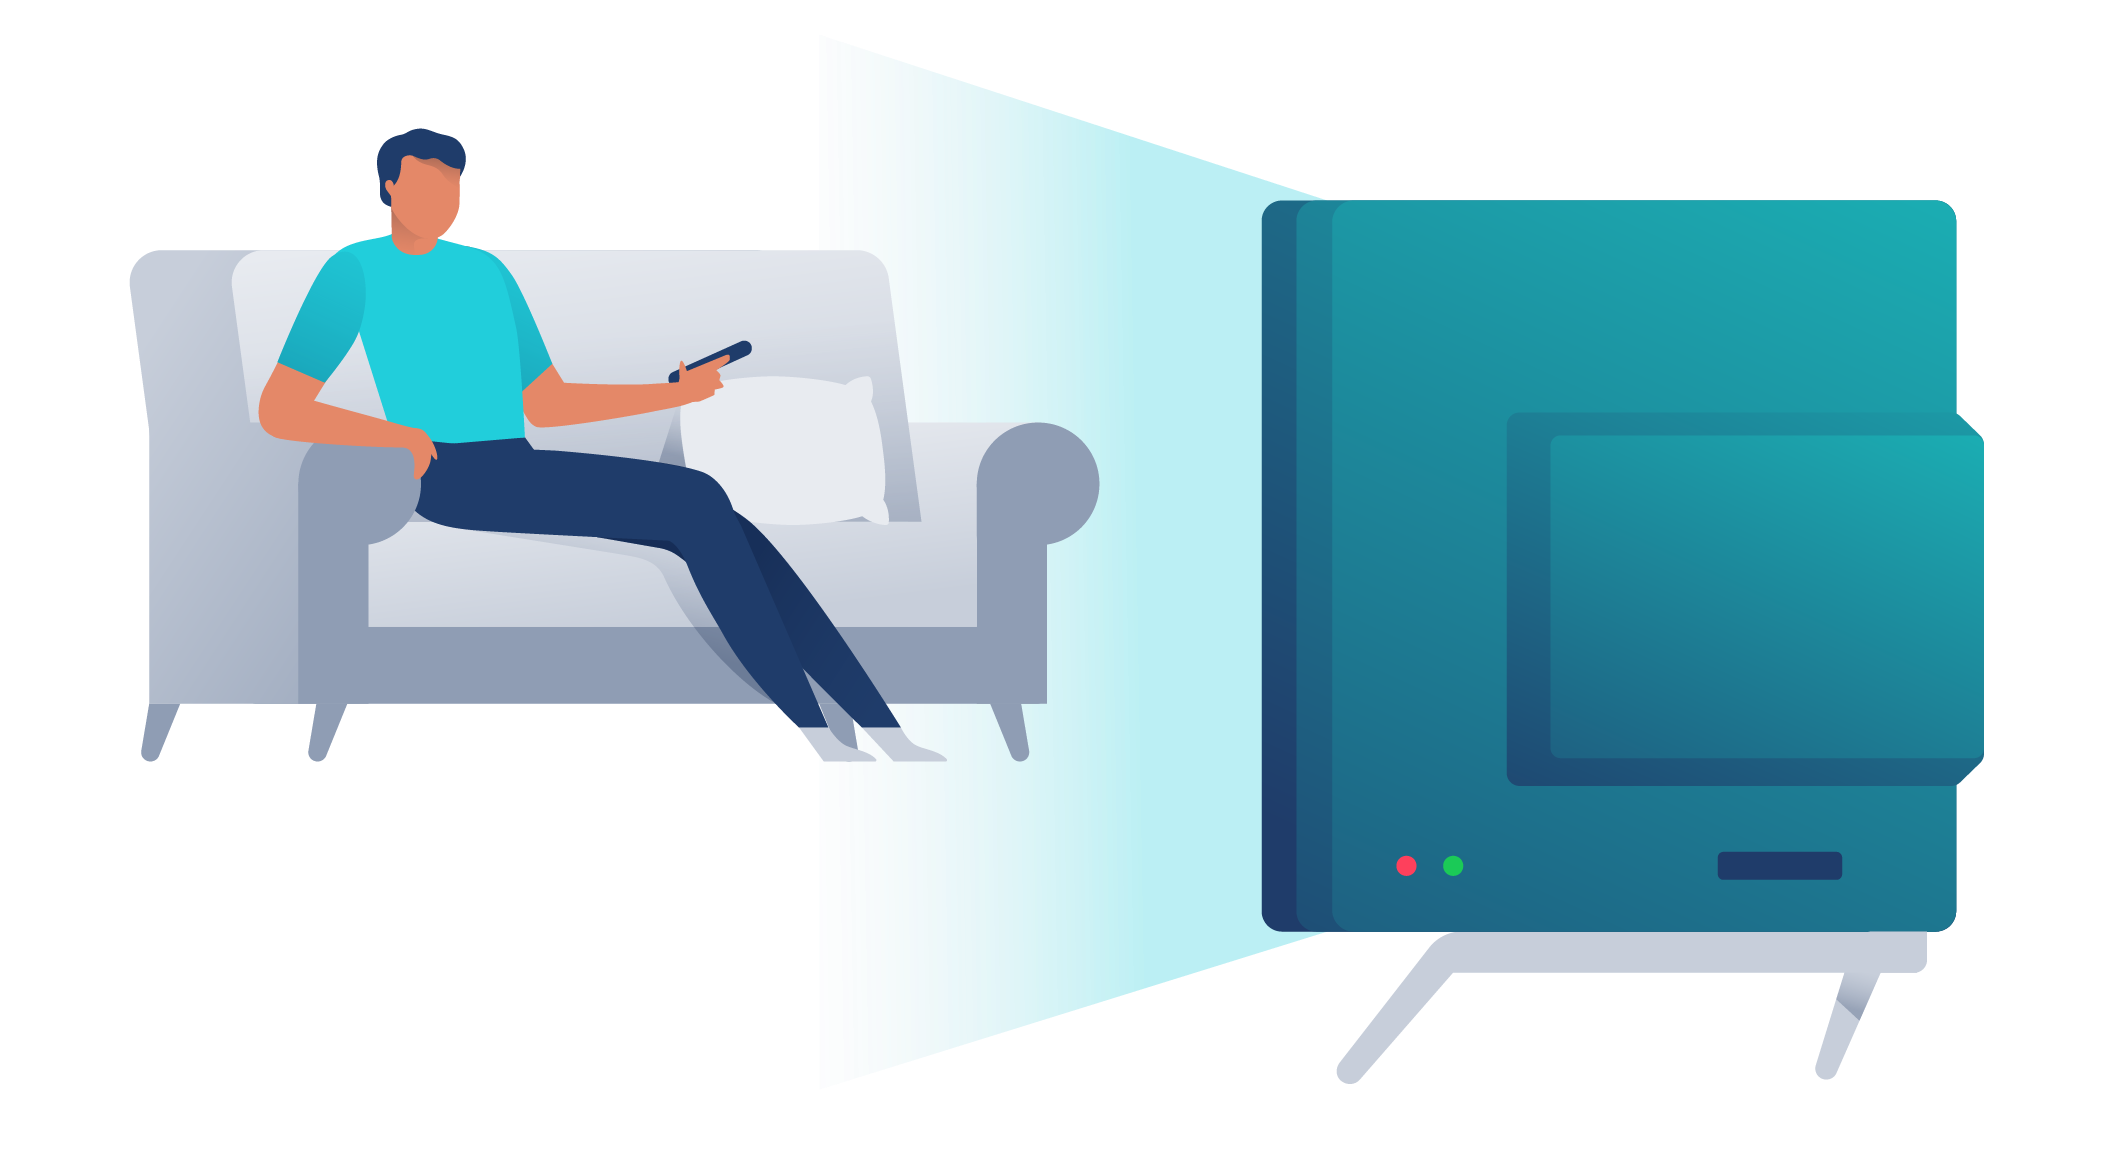 How to set up VPN on my Smart TV or console? – Surfshark Customer